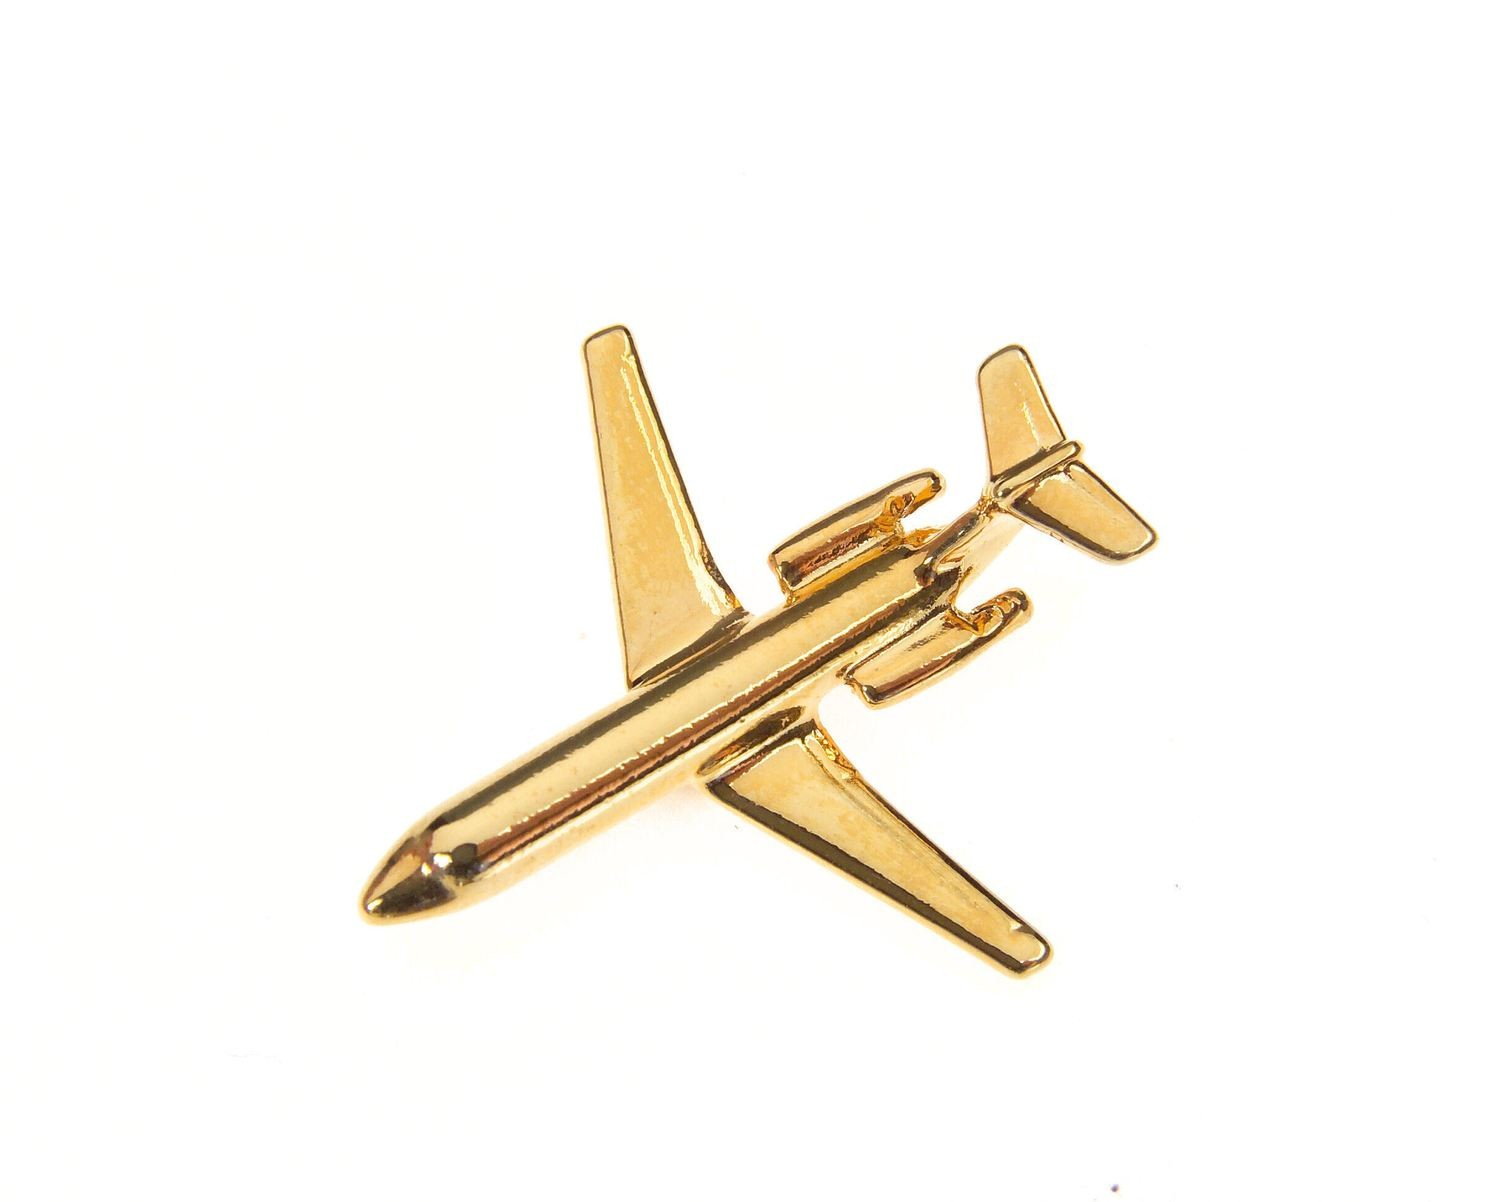 BAC 111 One Eleven Gold Plated Tie / Lapel Pin